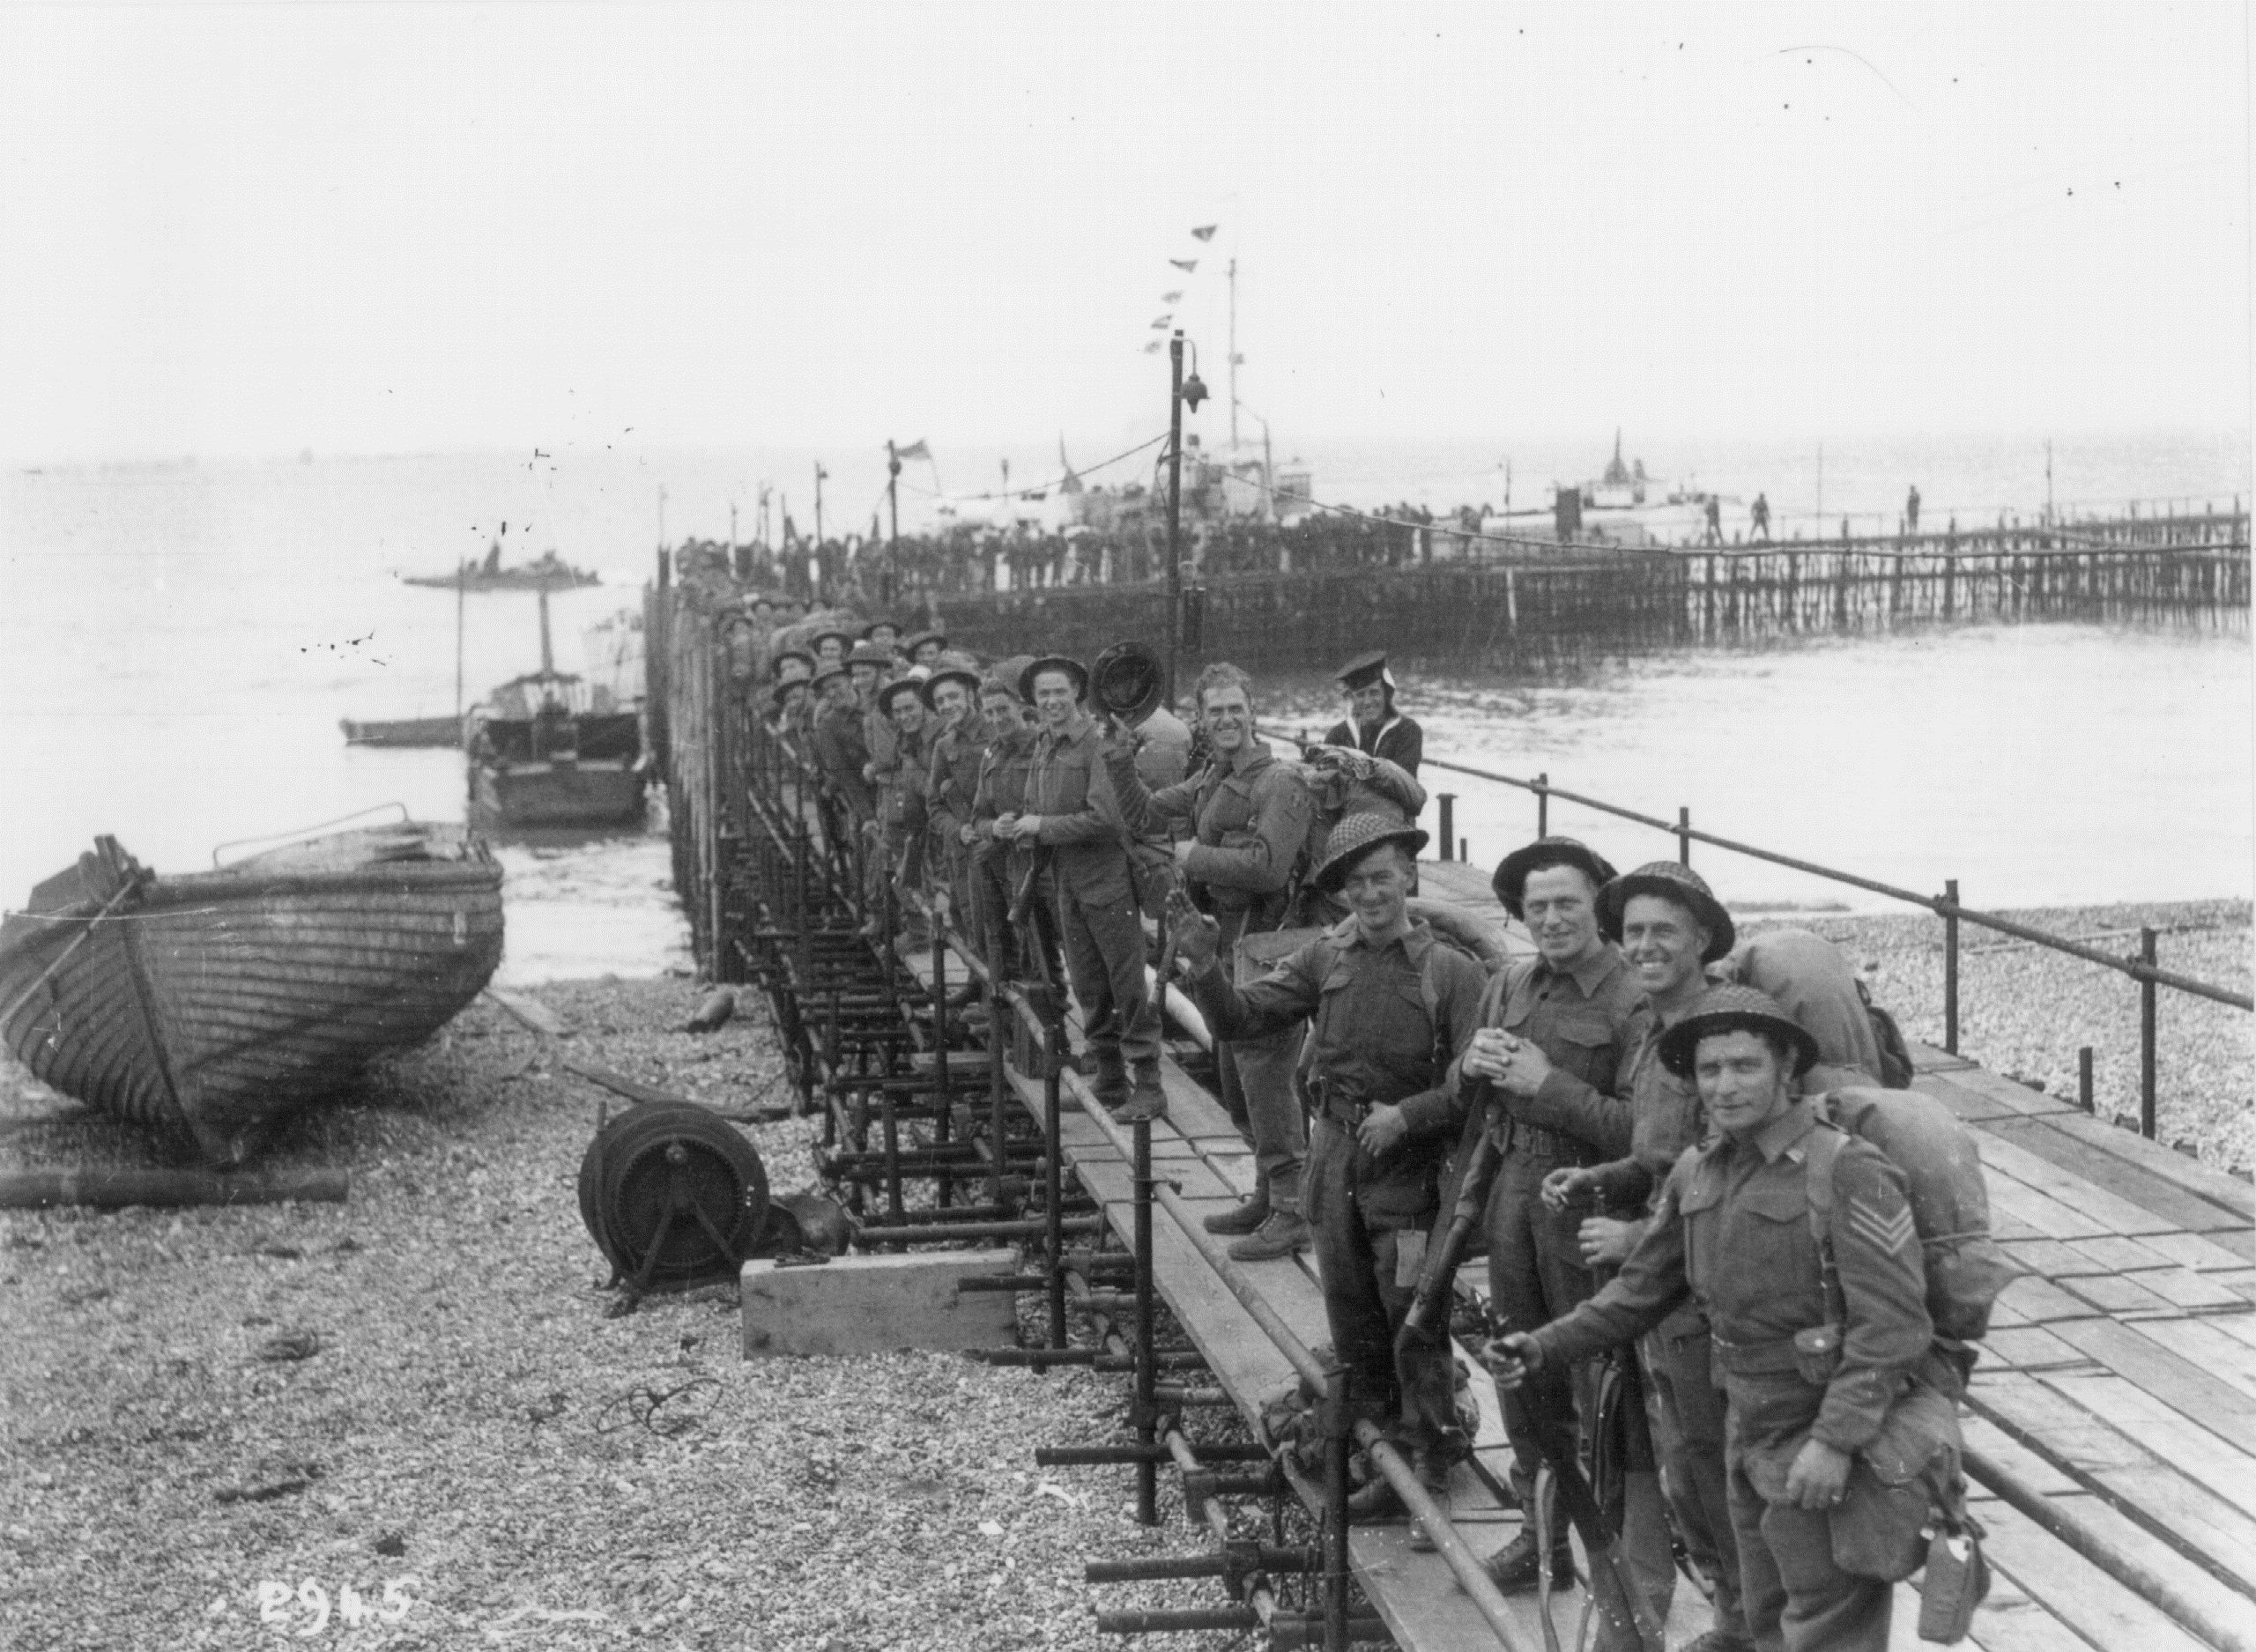 Royal Engineers prepare to board a landing craft near South Parade Pier in Portsmouth. Copyright The News, Portsmouth.